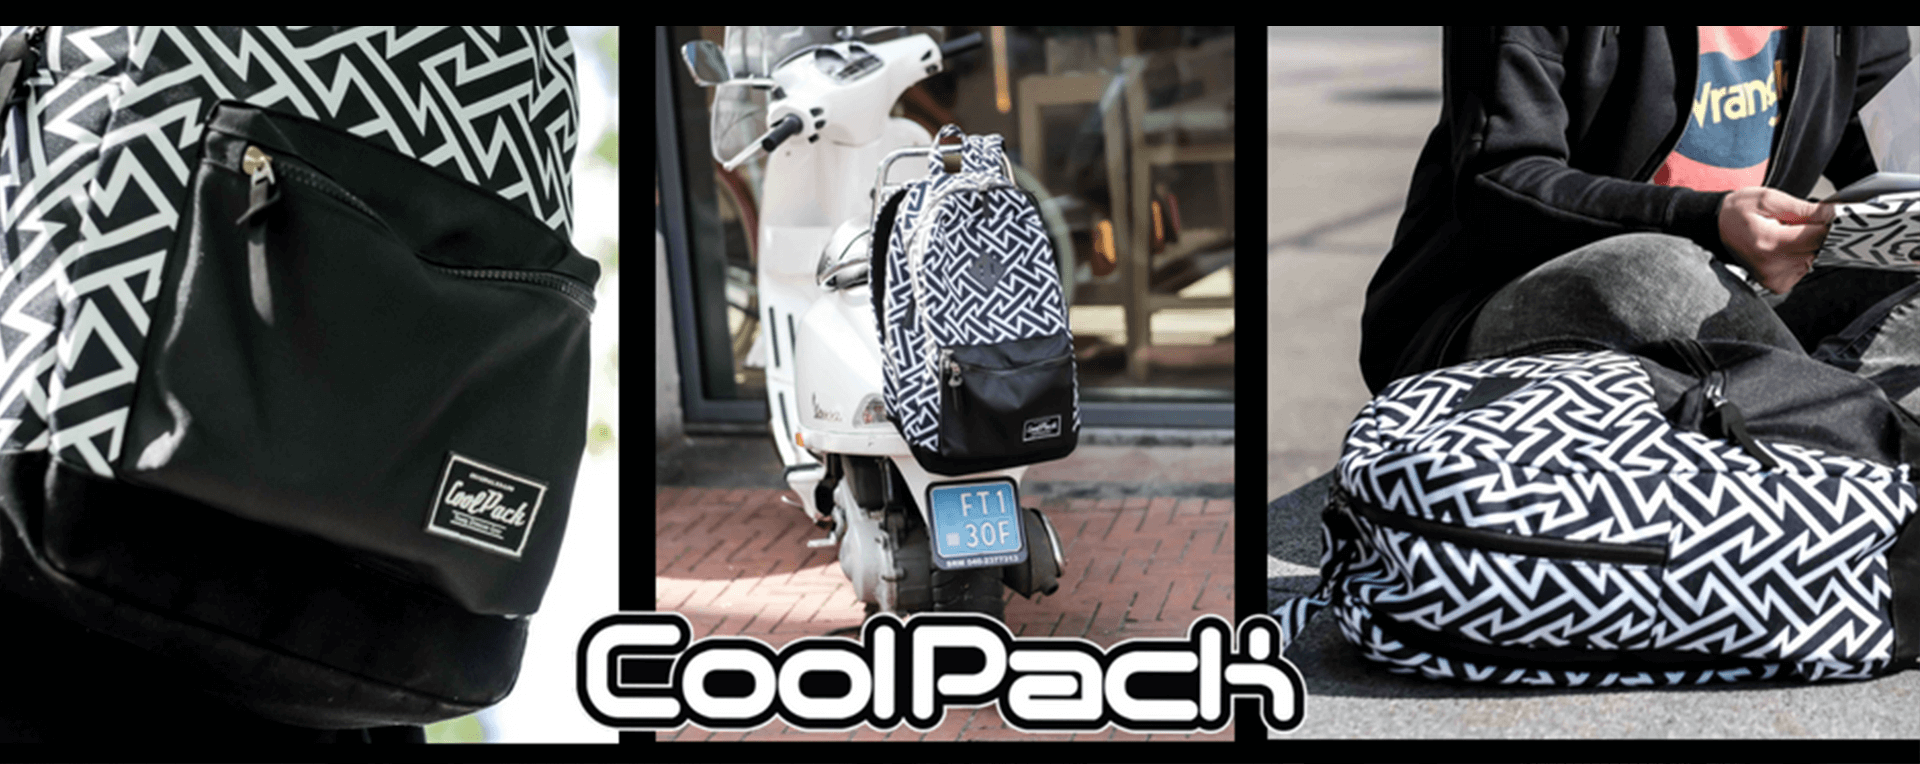 Coolpack/